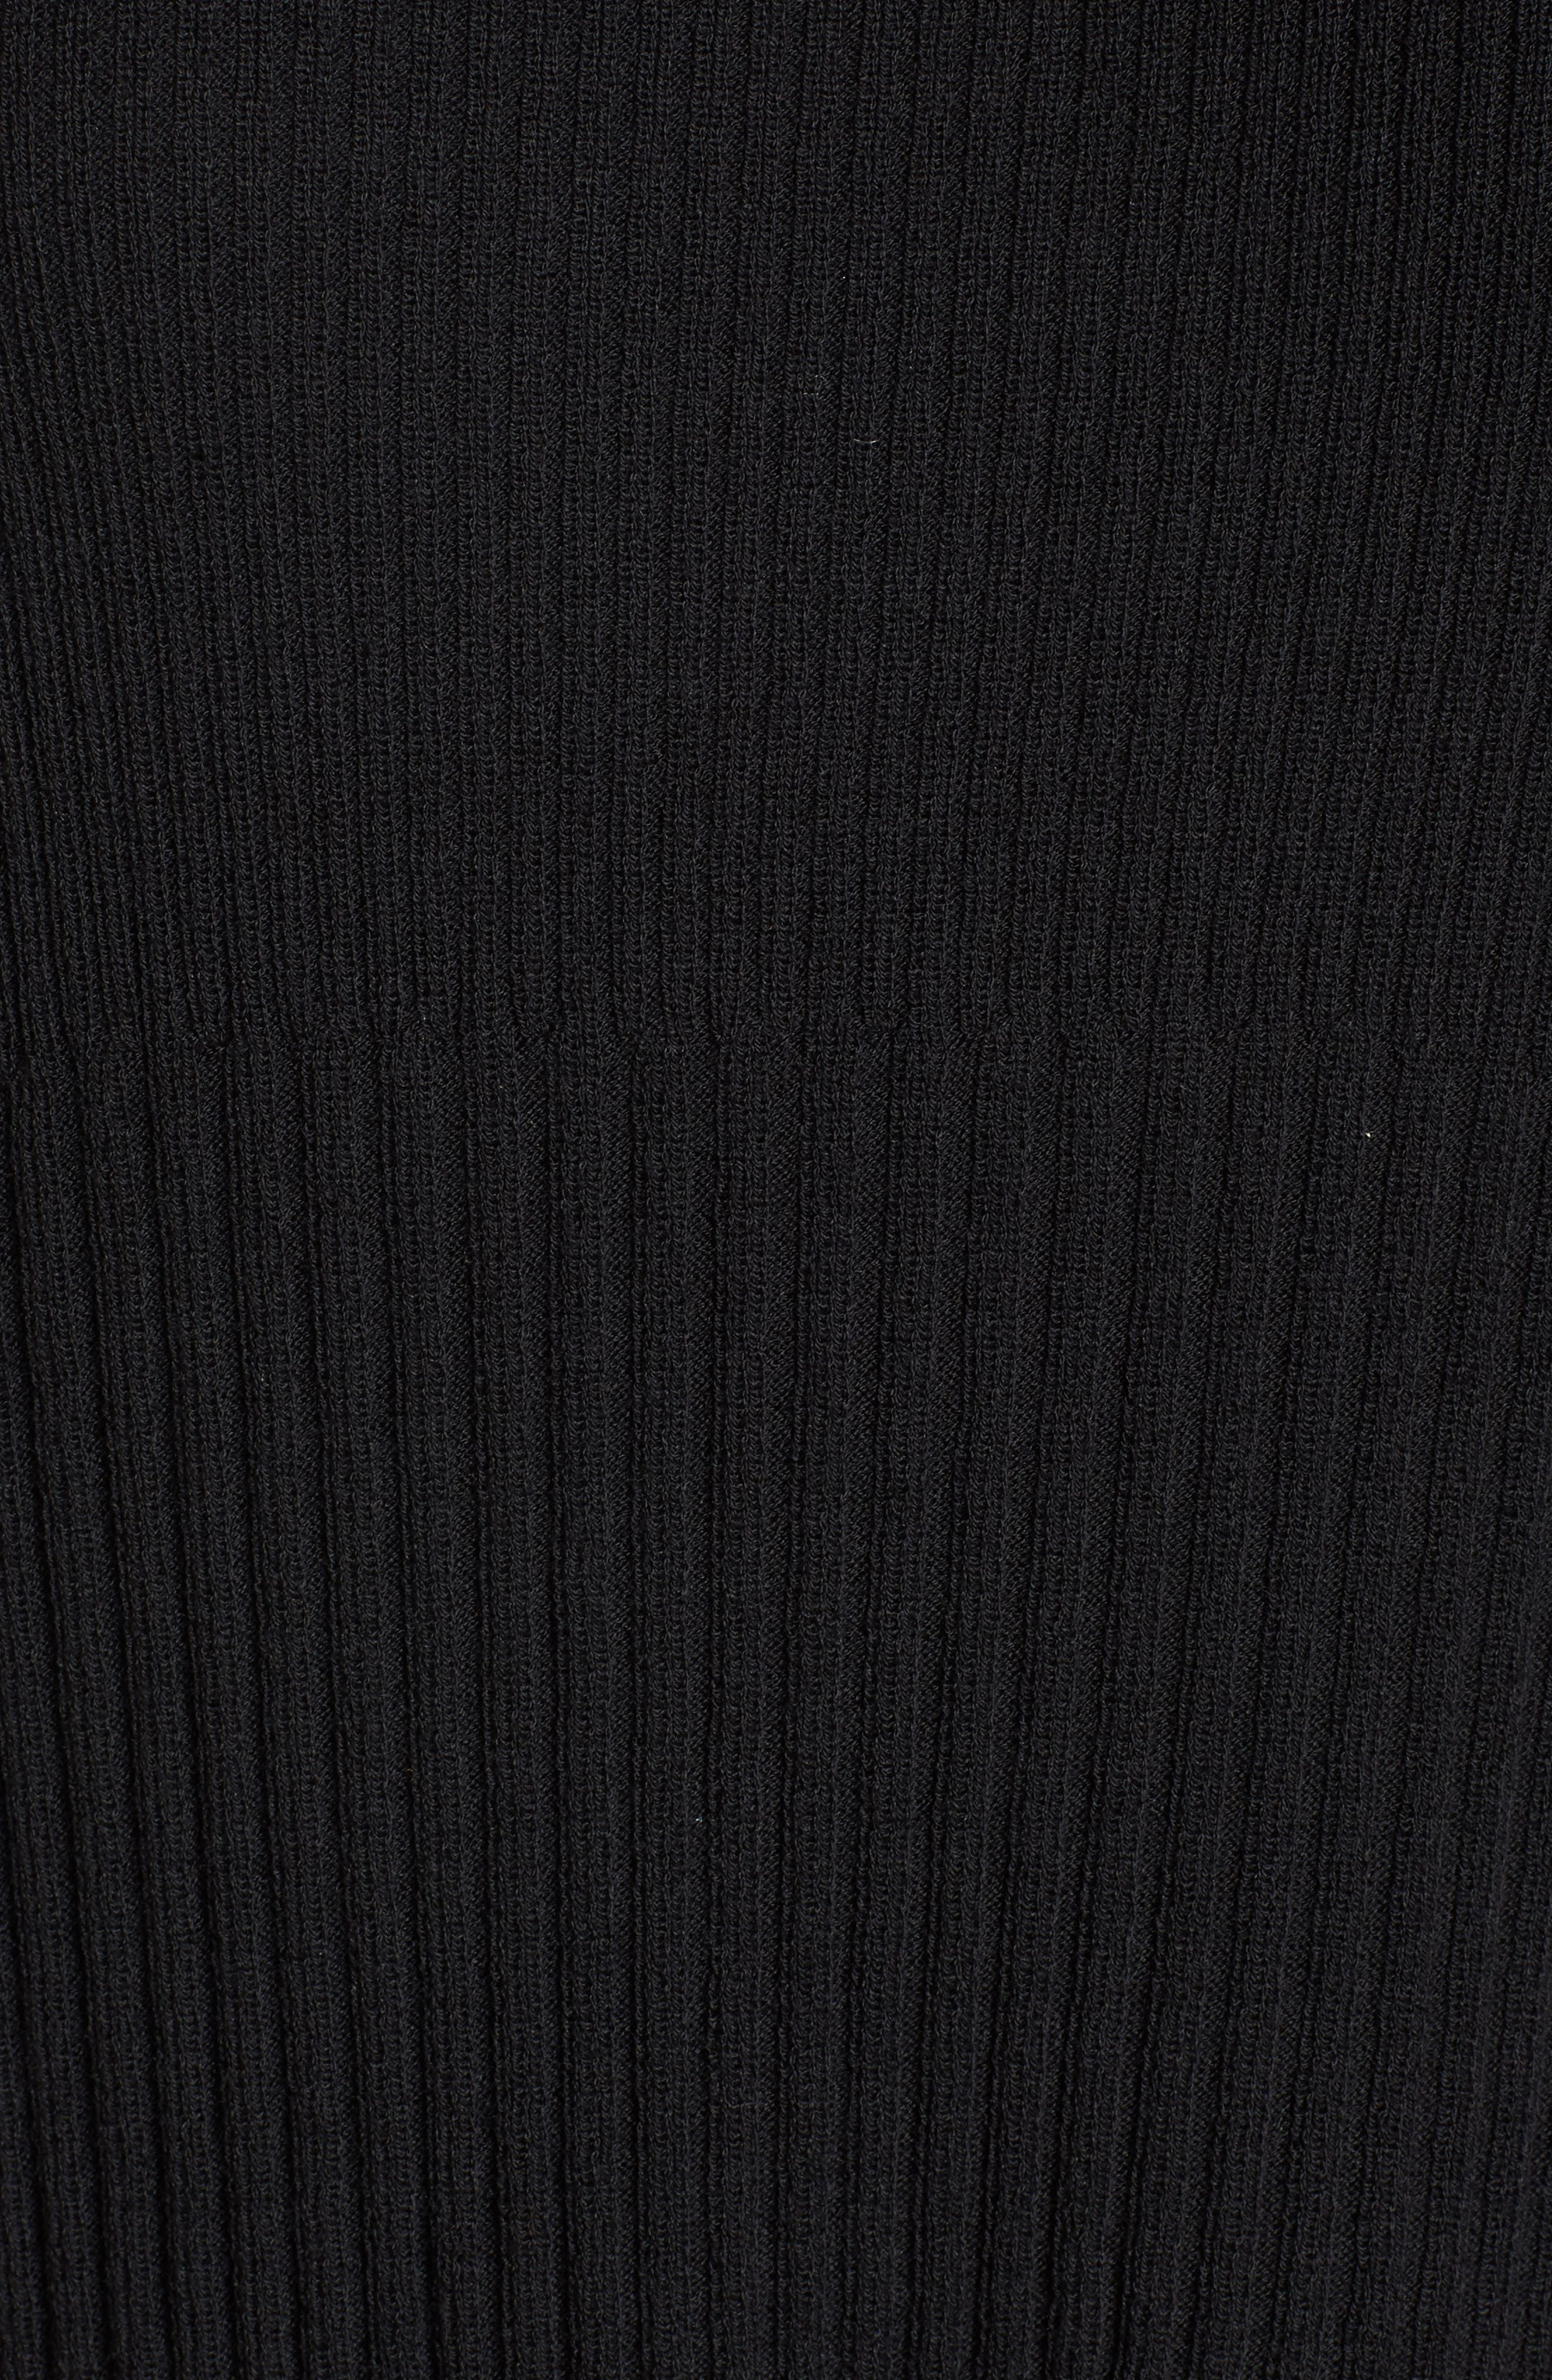 Ribbed Wool Sweater Dress,                             Alternate thumbnail 9, color,